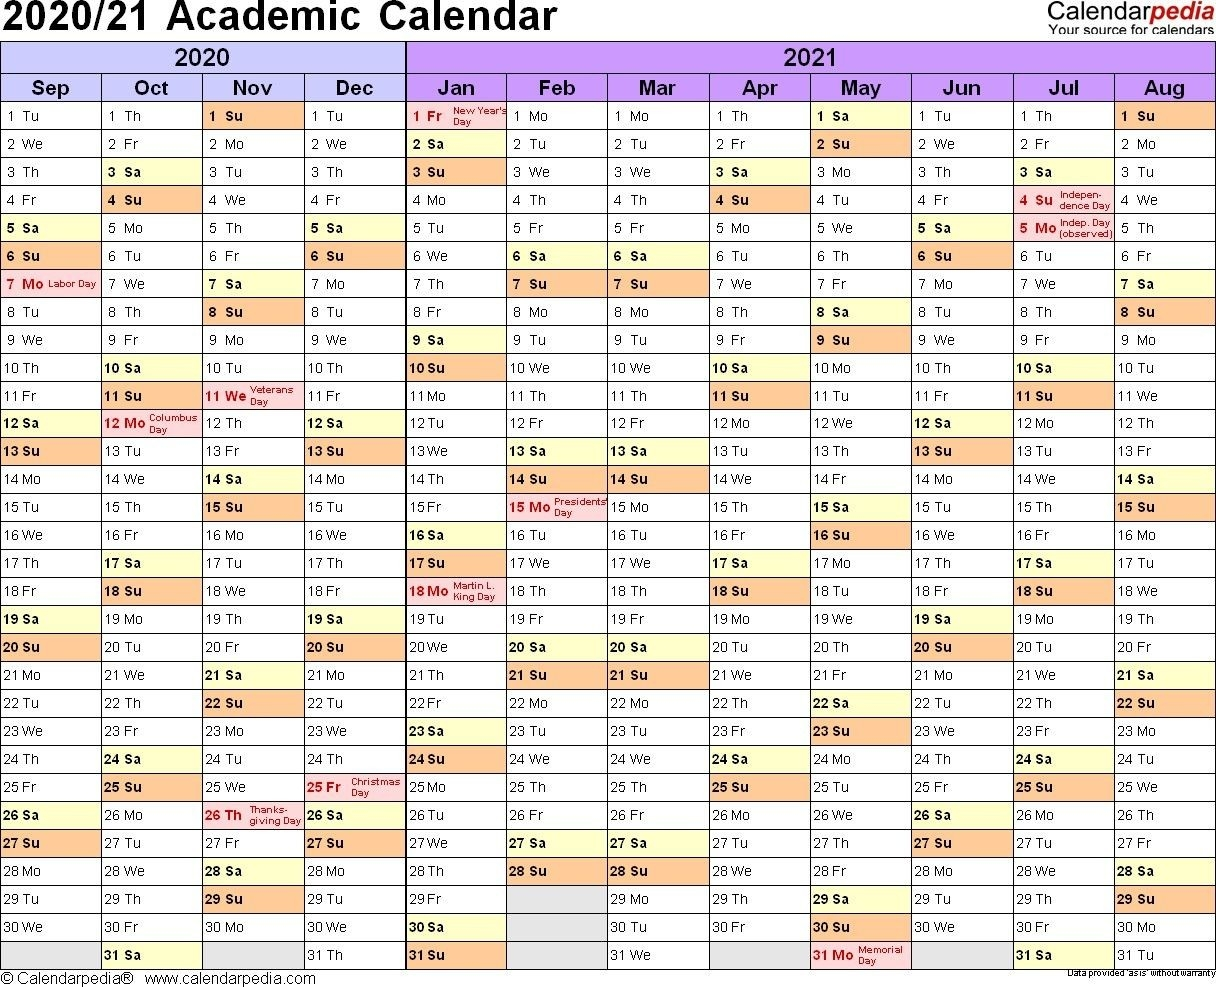 Academic Calendars 2020 2021 Free Printable Word Templates  Depo Provera Calendar 2021 Calculator